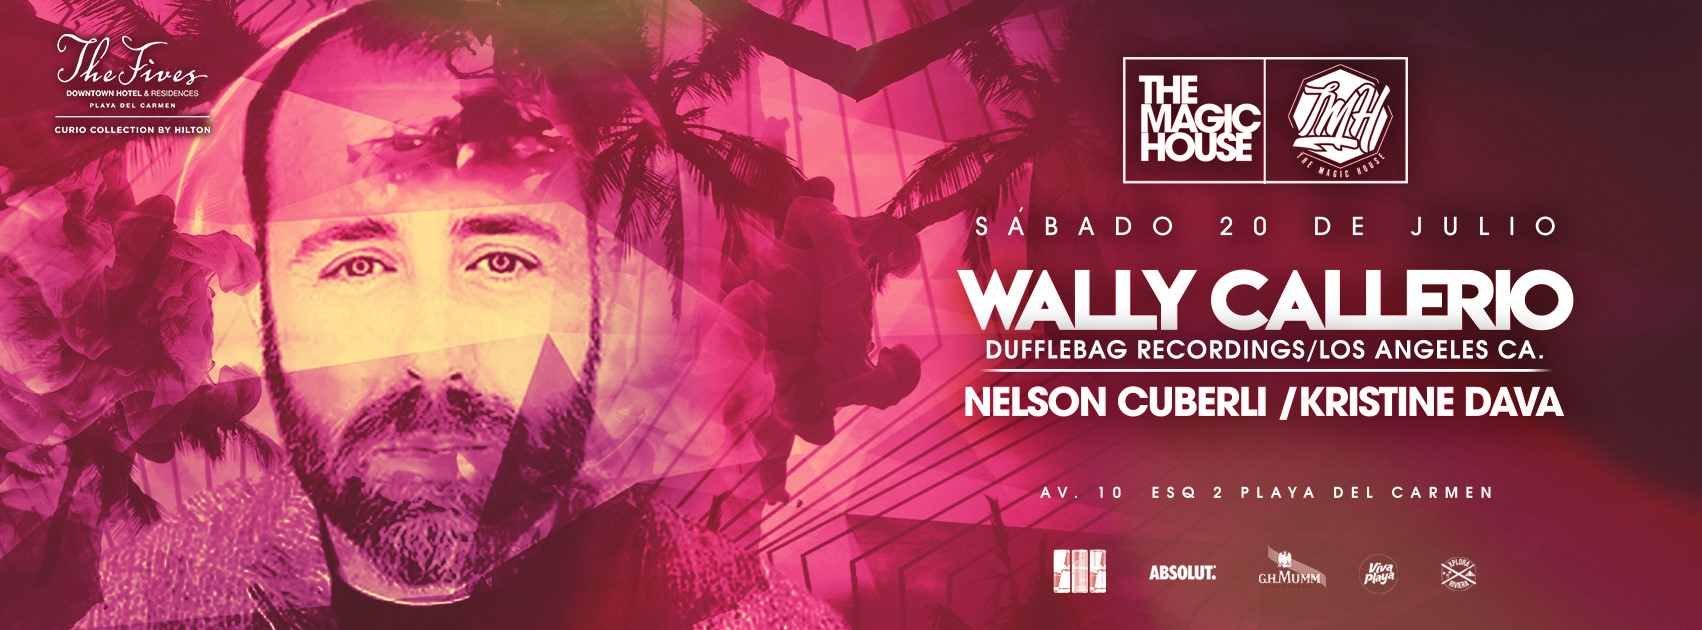 Wally Callerio - Eventos Playa del Carmen